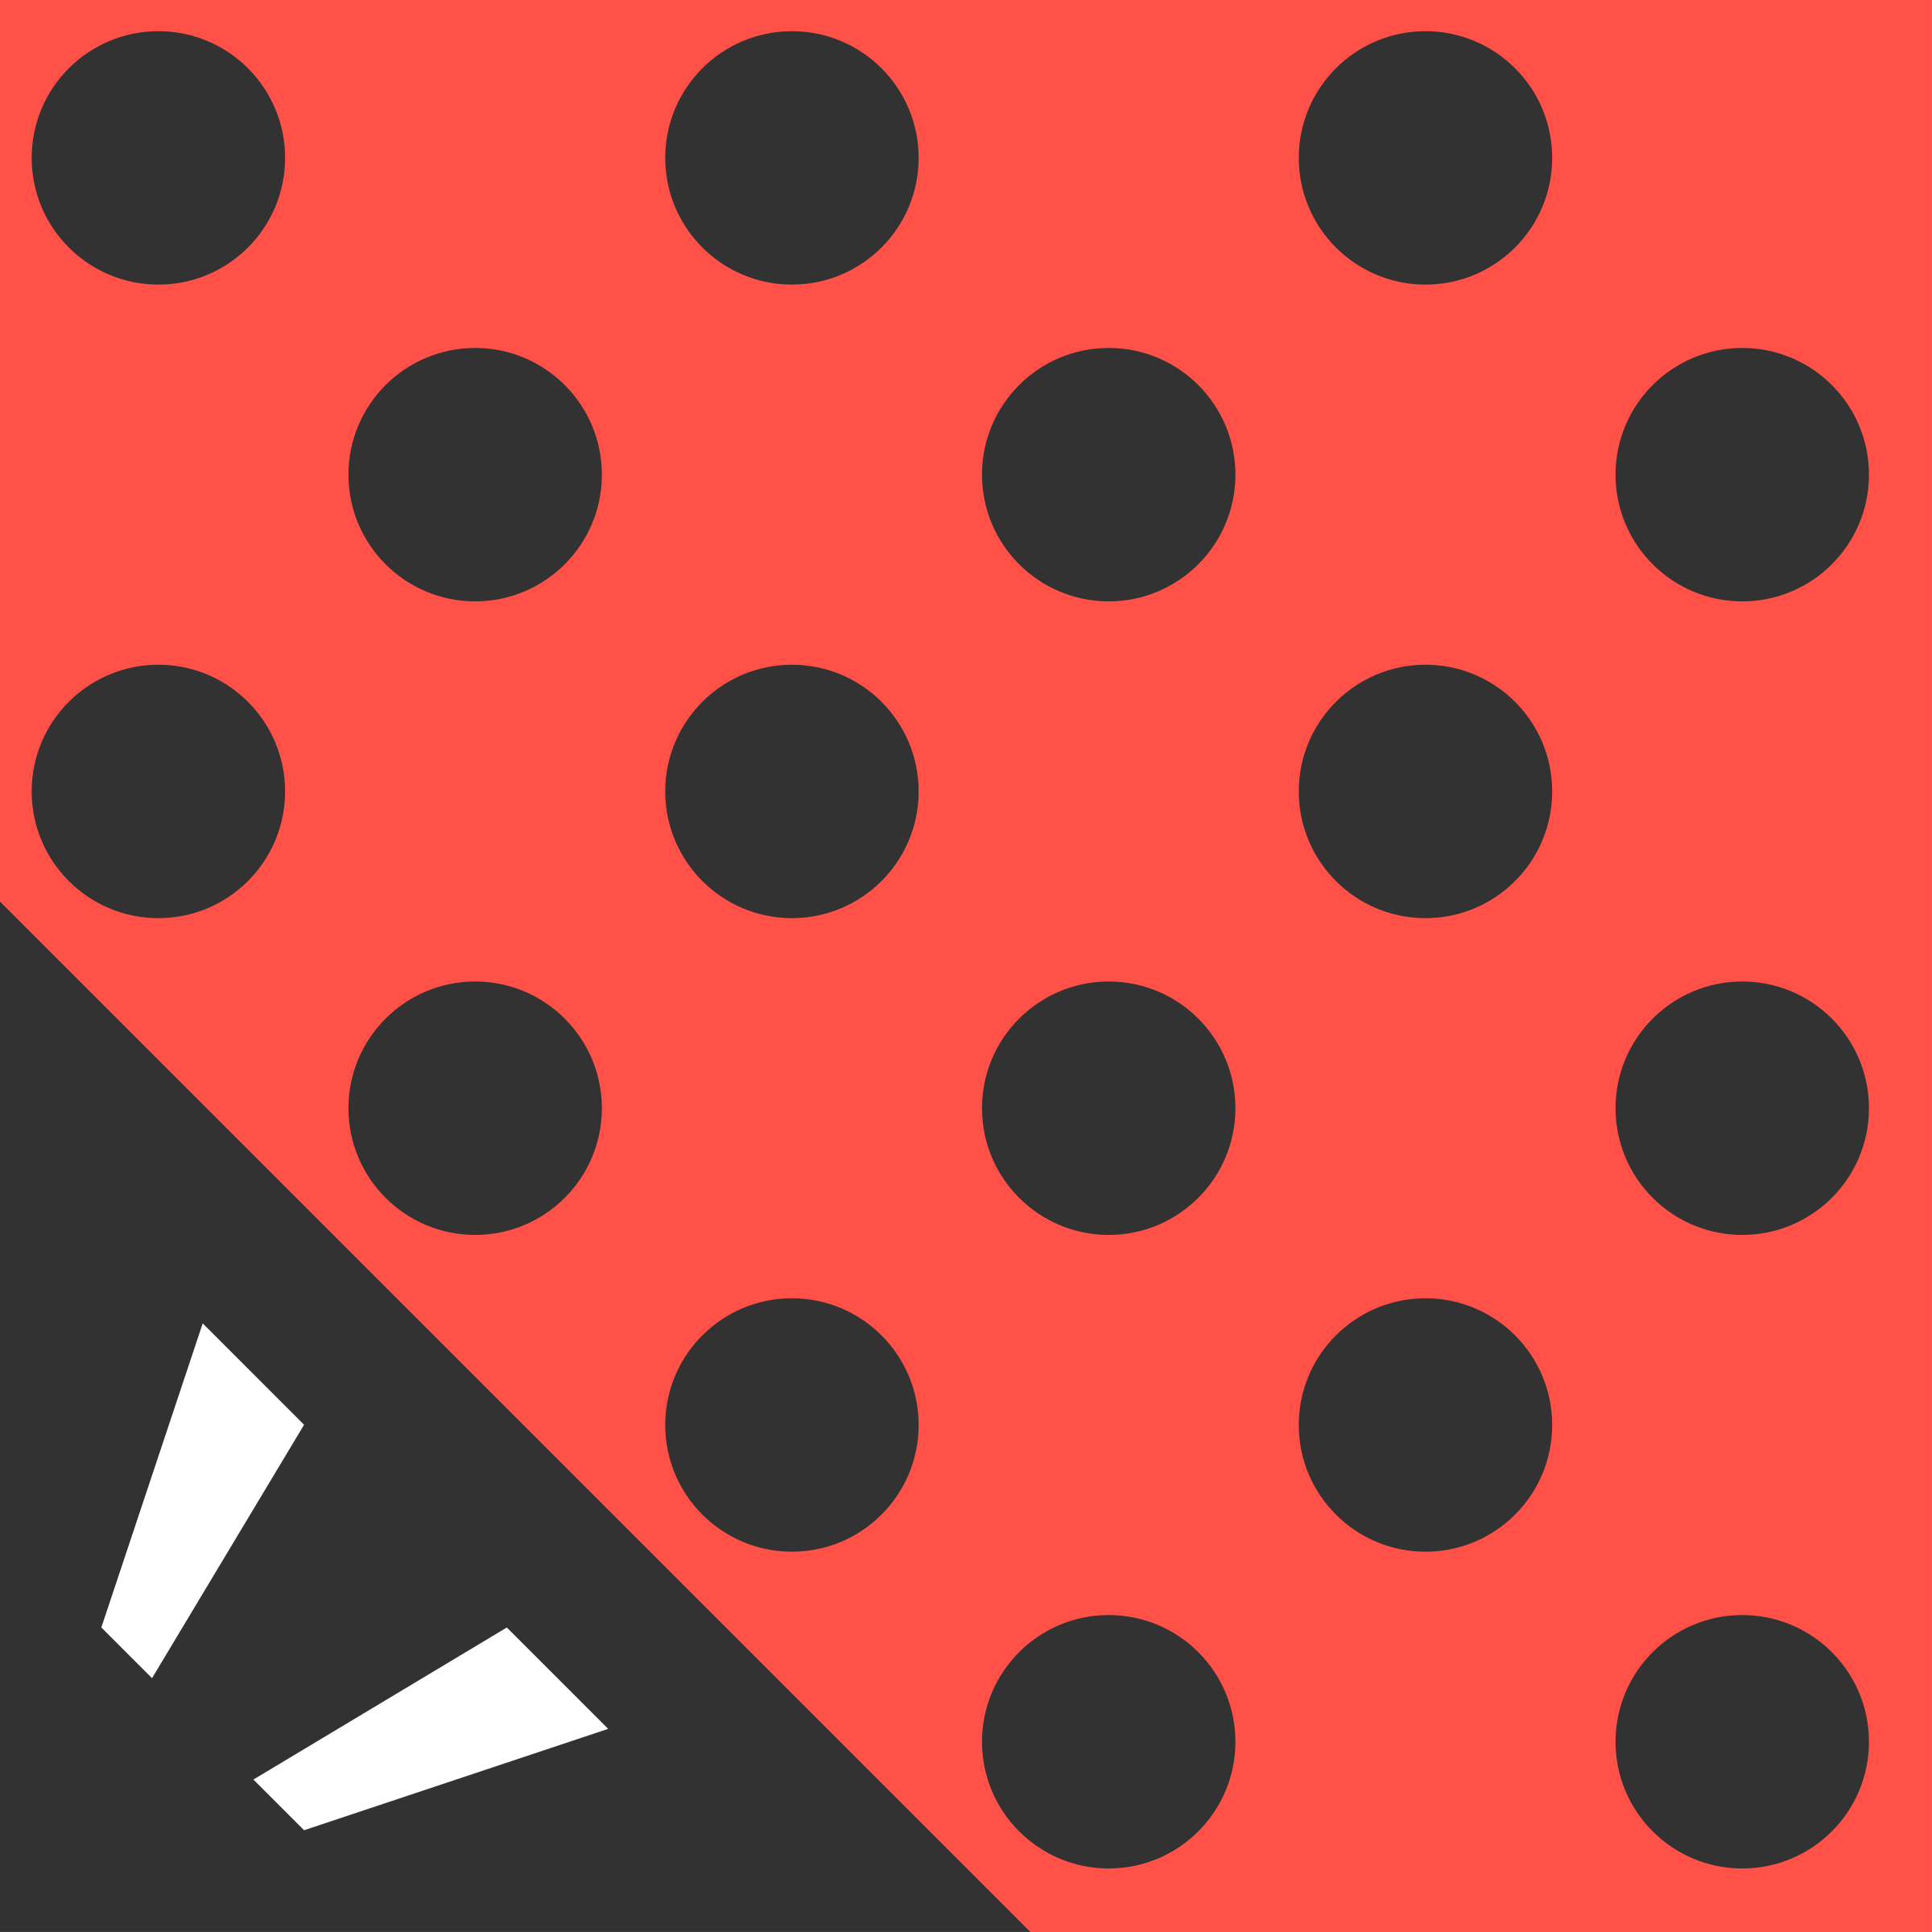 Abstract Cubism Ladybug Icon by qubodup